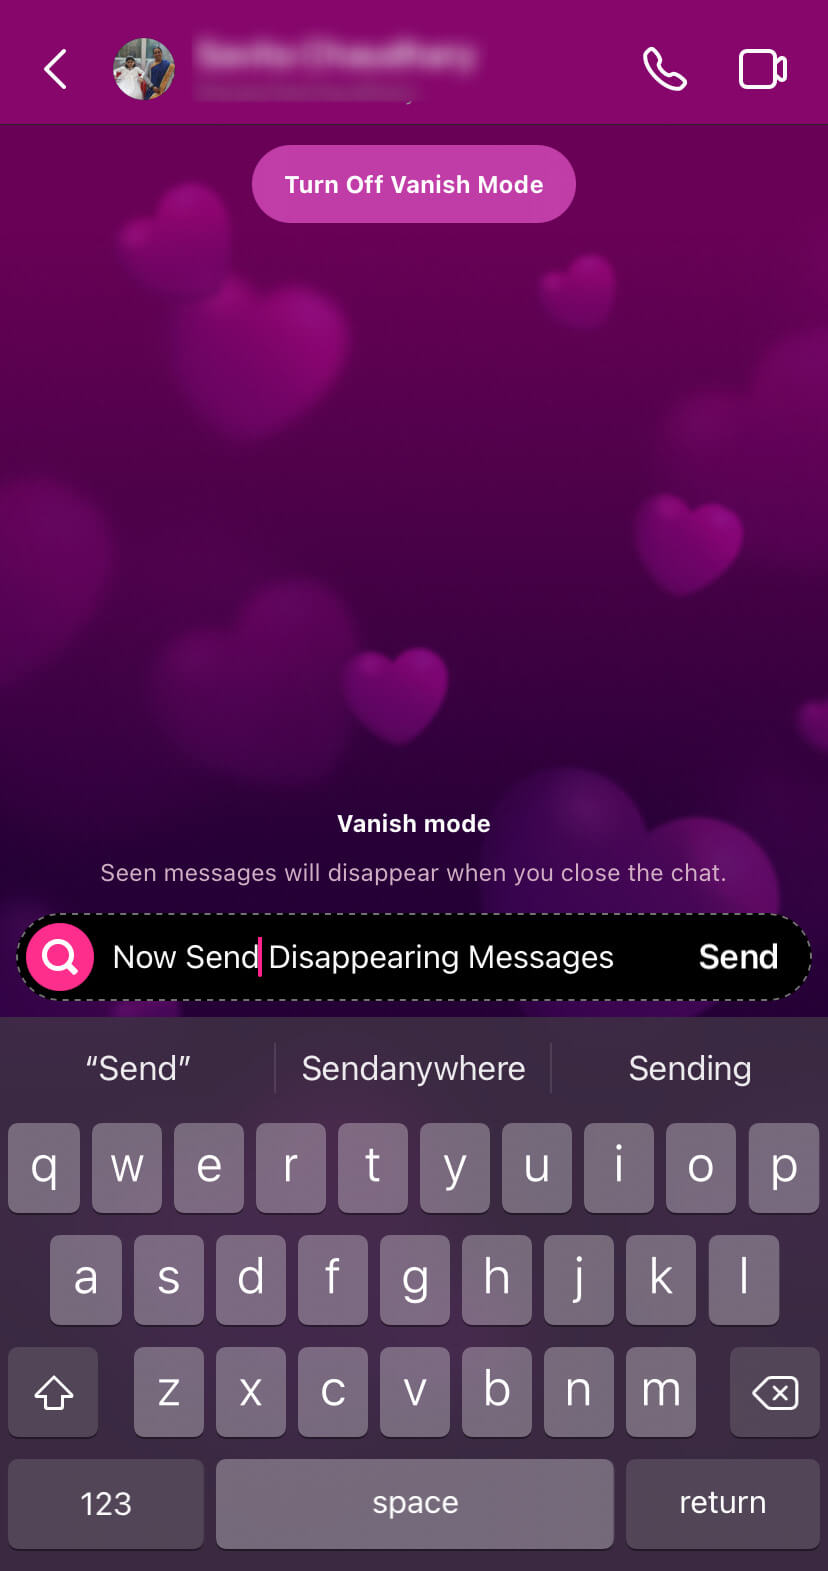 Send disappearing messages in vanish mode on Instagram